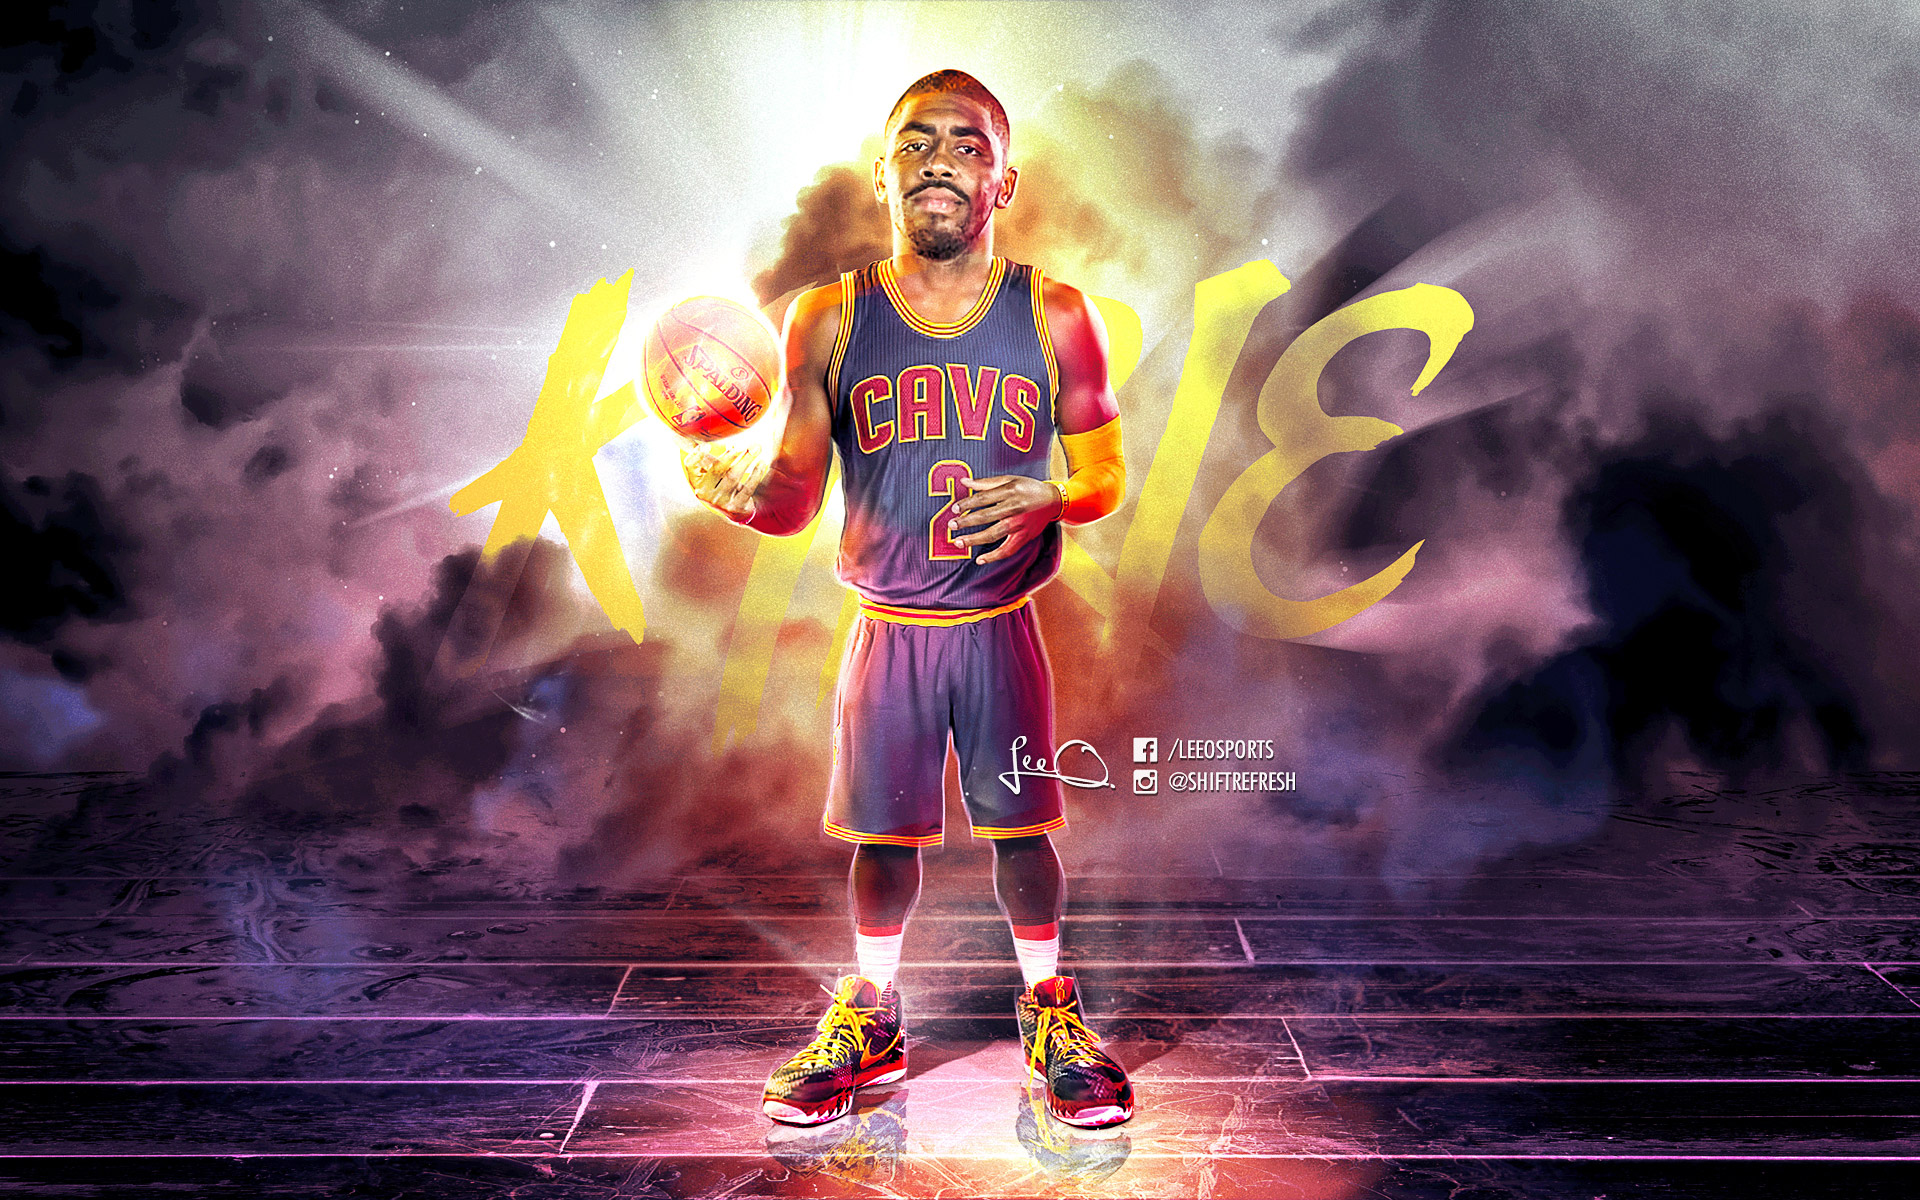 Kyrie Irving Cavaliers 2016 1920x1200 Wallpaper